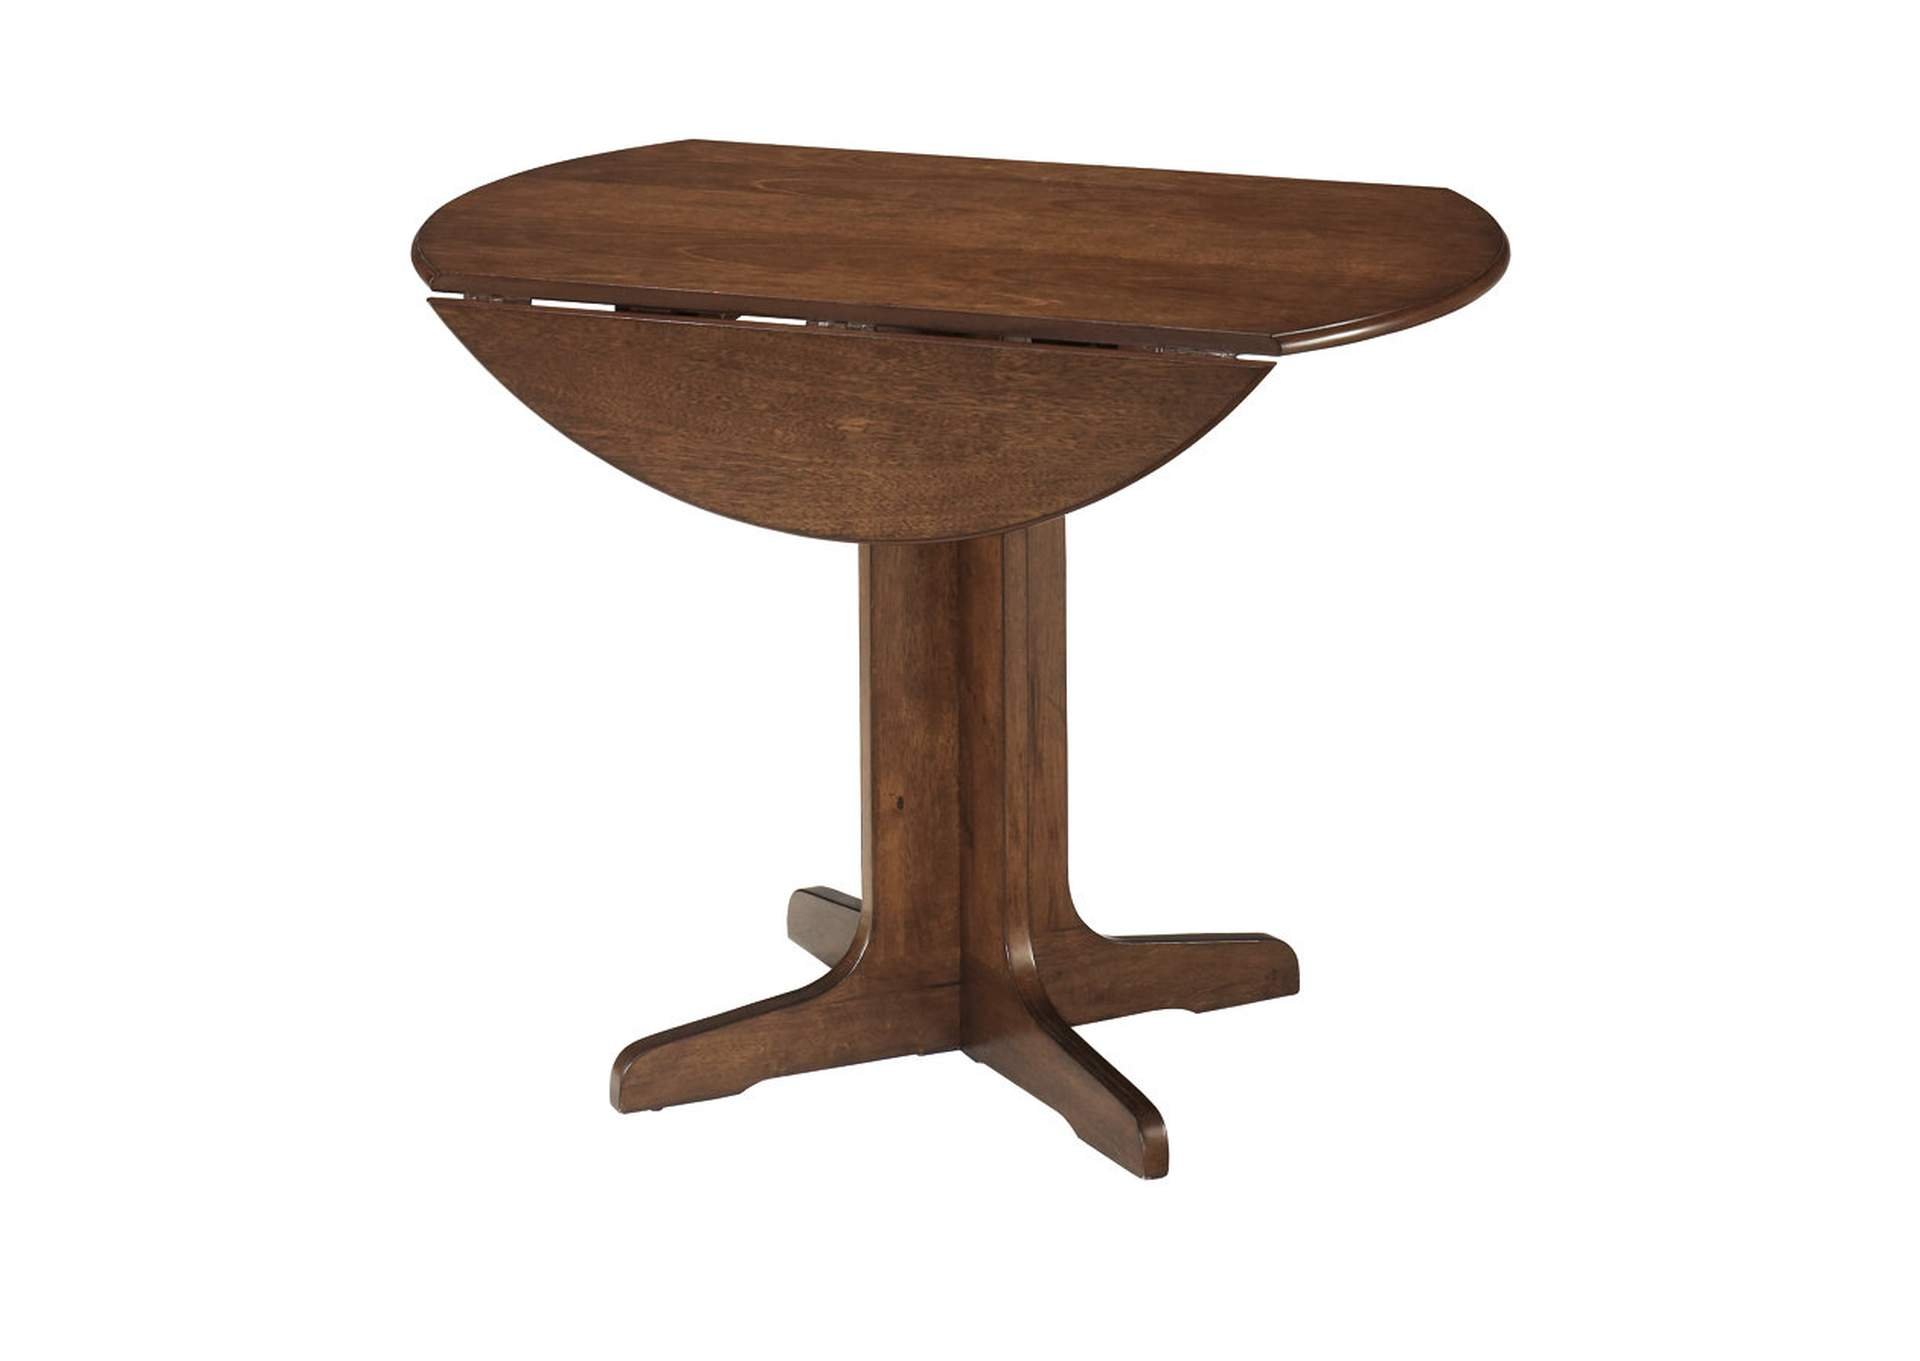 Stuman Round Drop Leaf Table,ABF Signature Design by Ashley